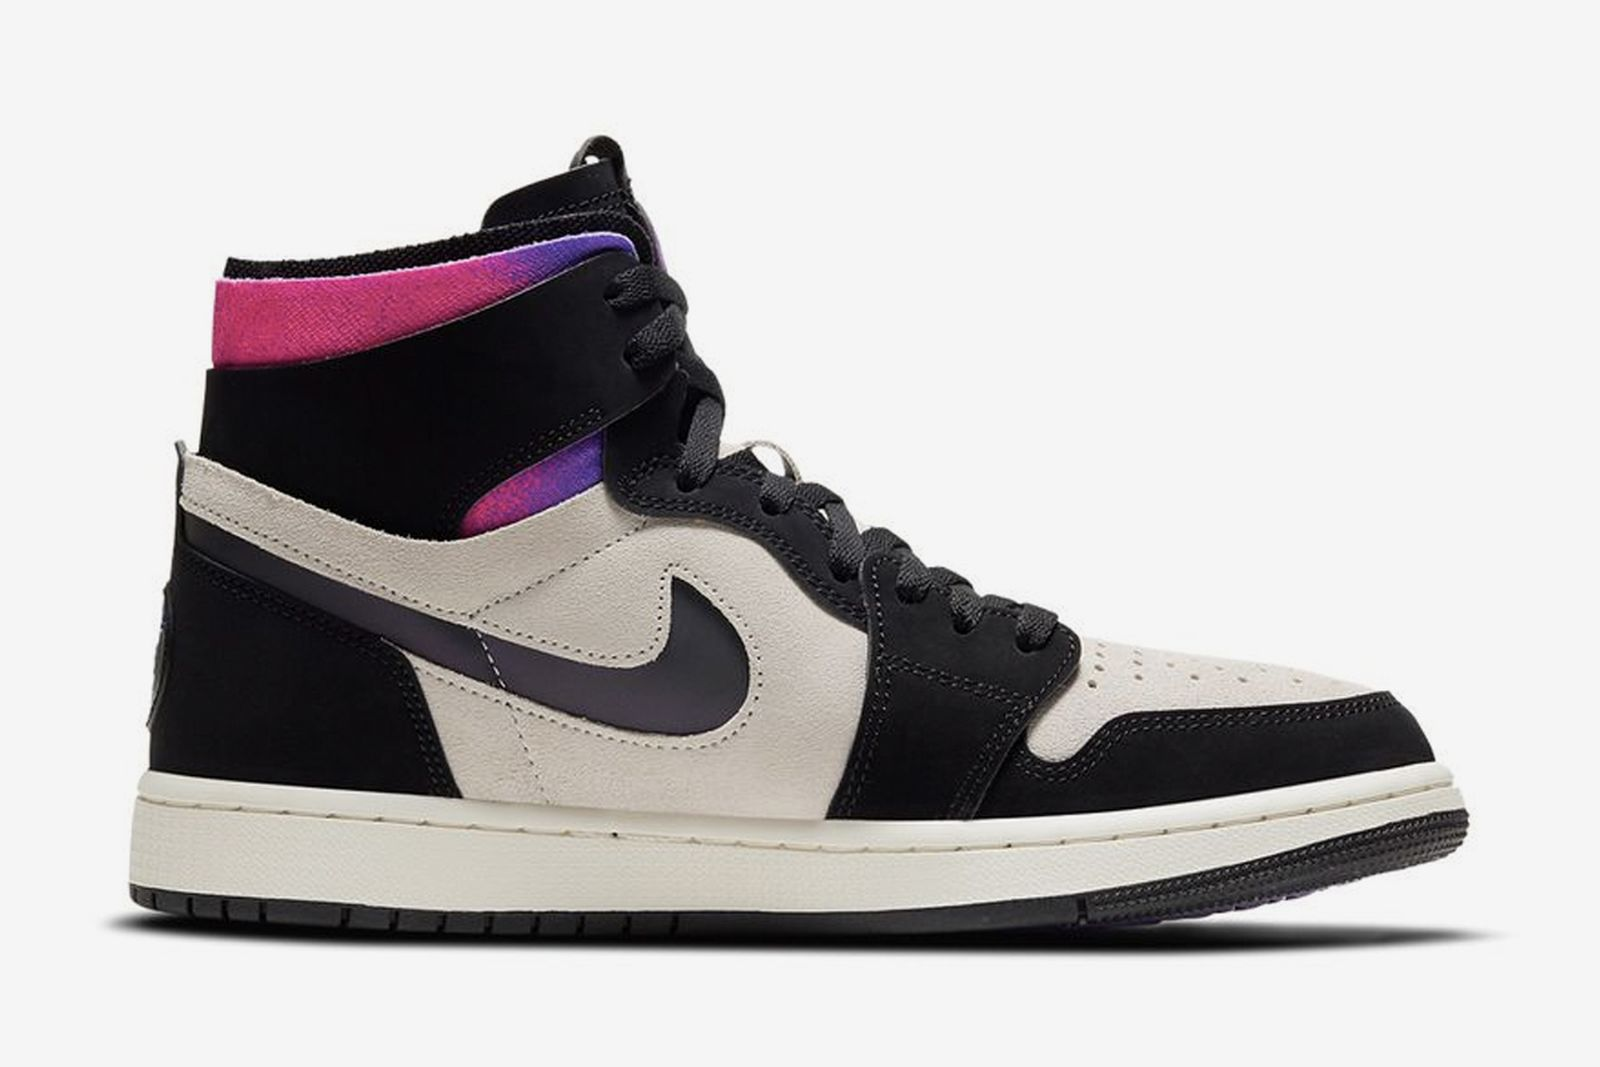 paris-saint-germain-air-jordan-1-high-zoom-cmft-release-date-price-02